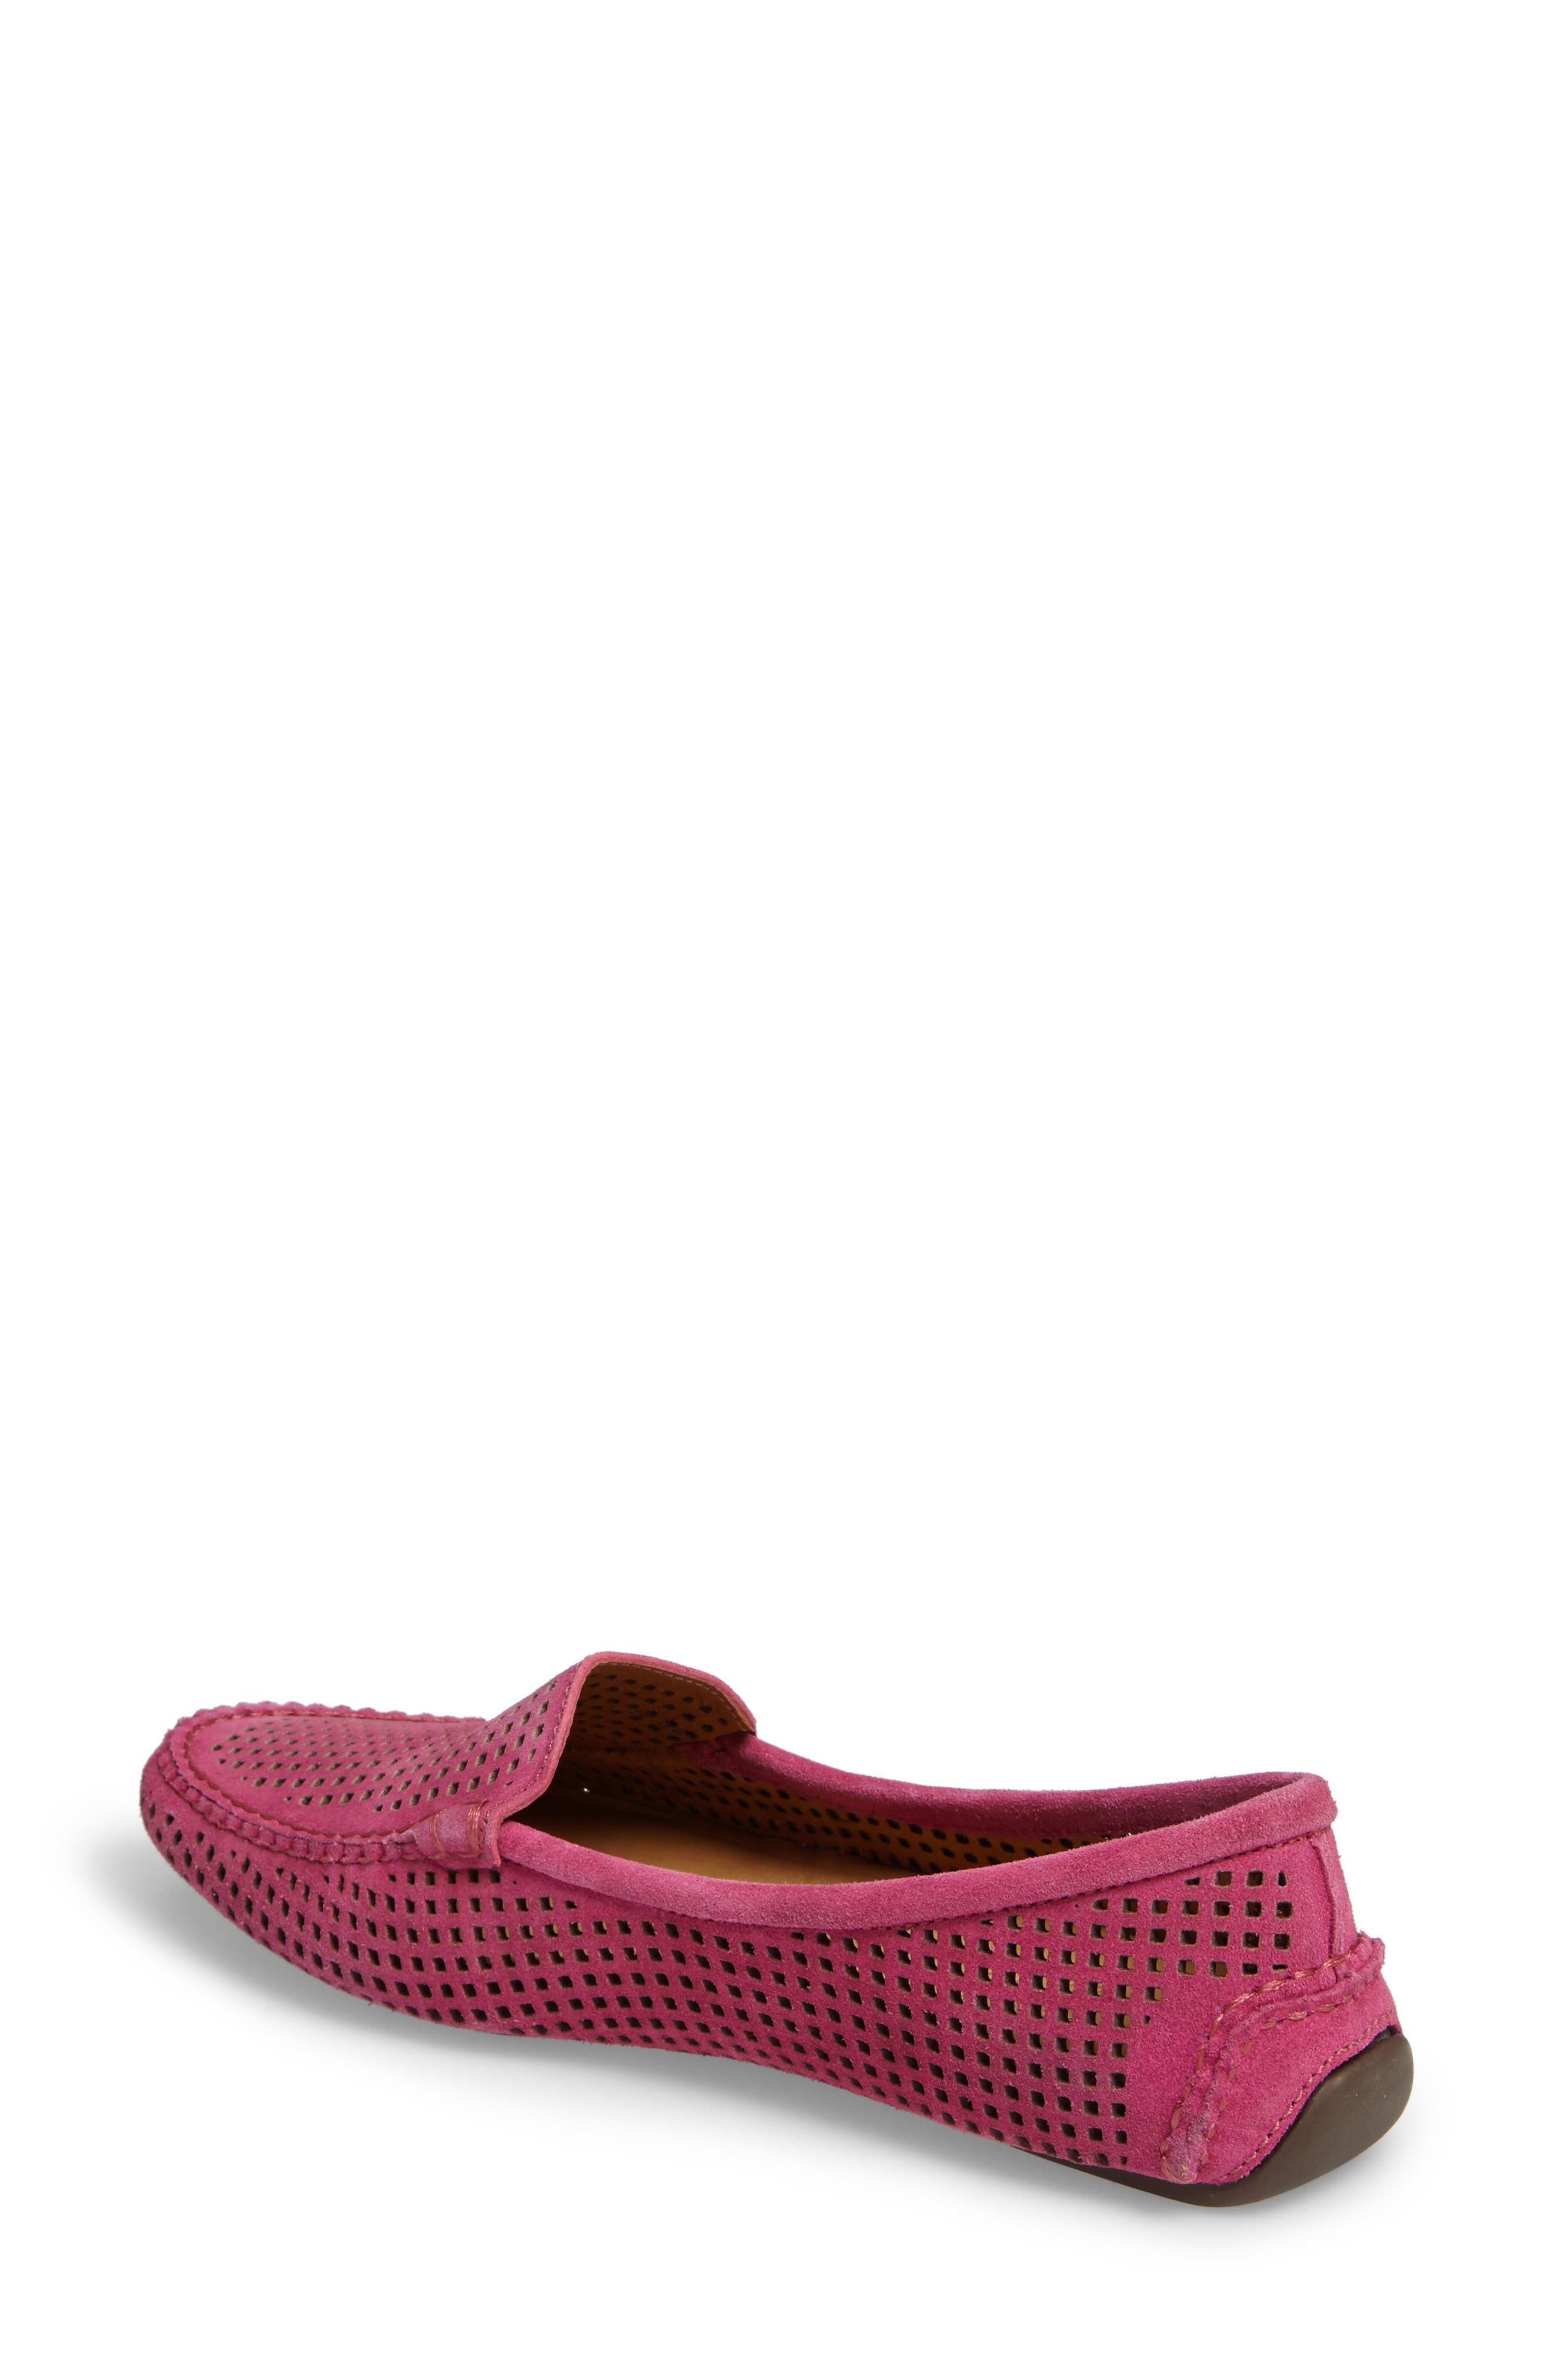 'Barrie' Flat,                             Alternate thumbnail 2, color,                             Hot Pink Suede